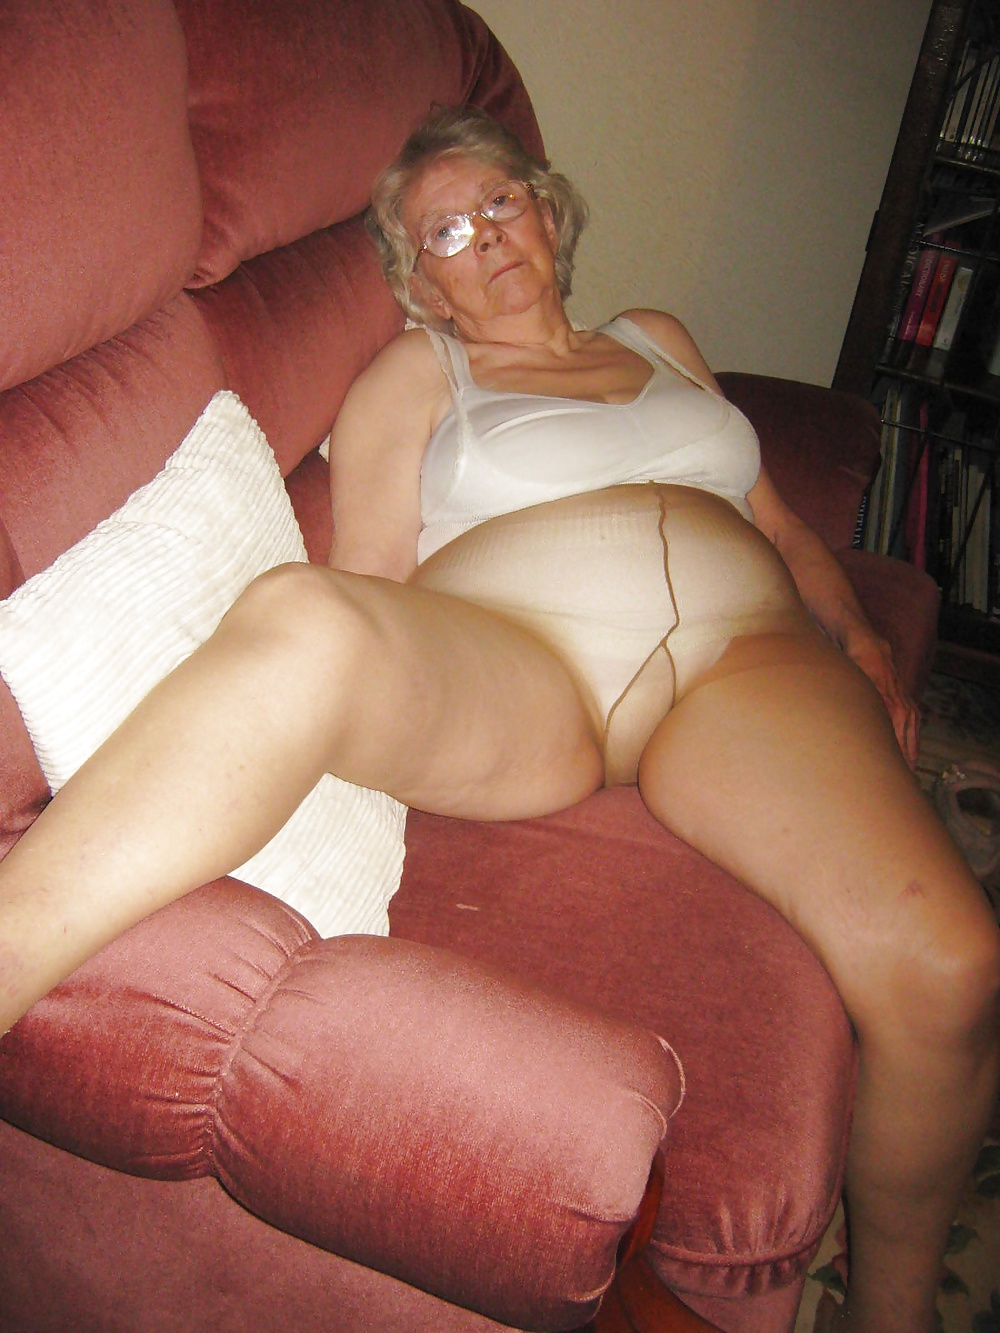 Sheila 80 Year Old Granny From Uk - 19 Pics  Xhamster-9796